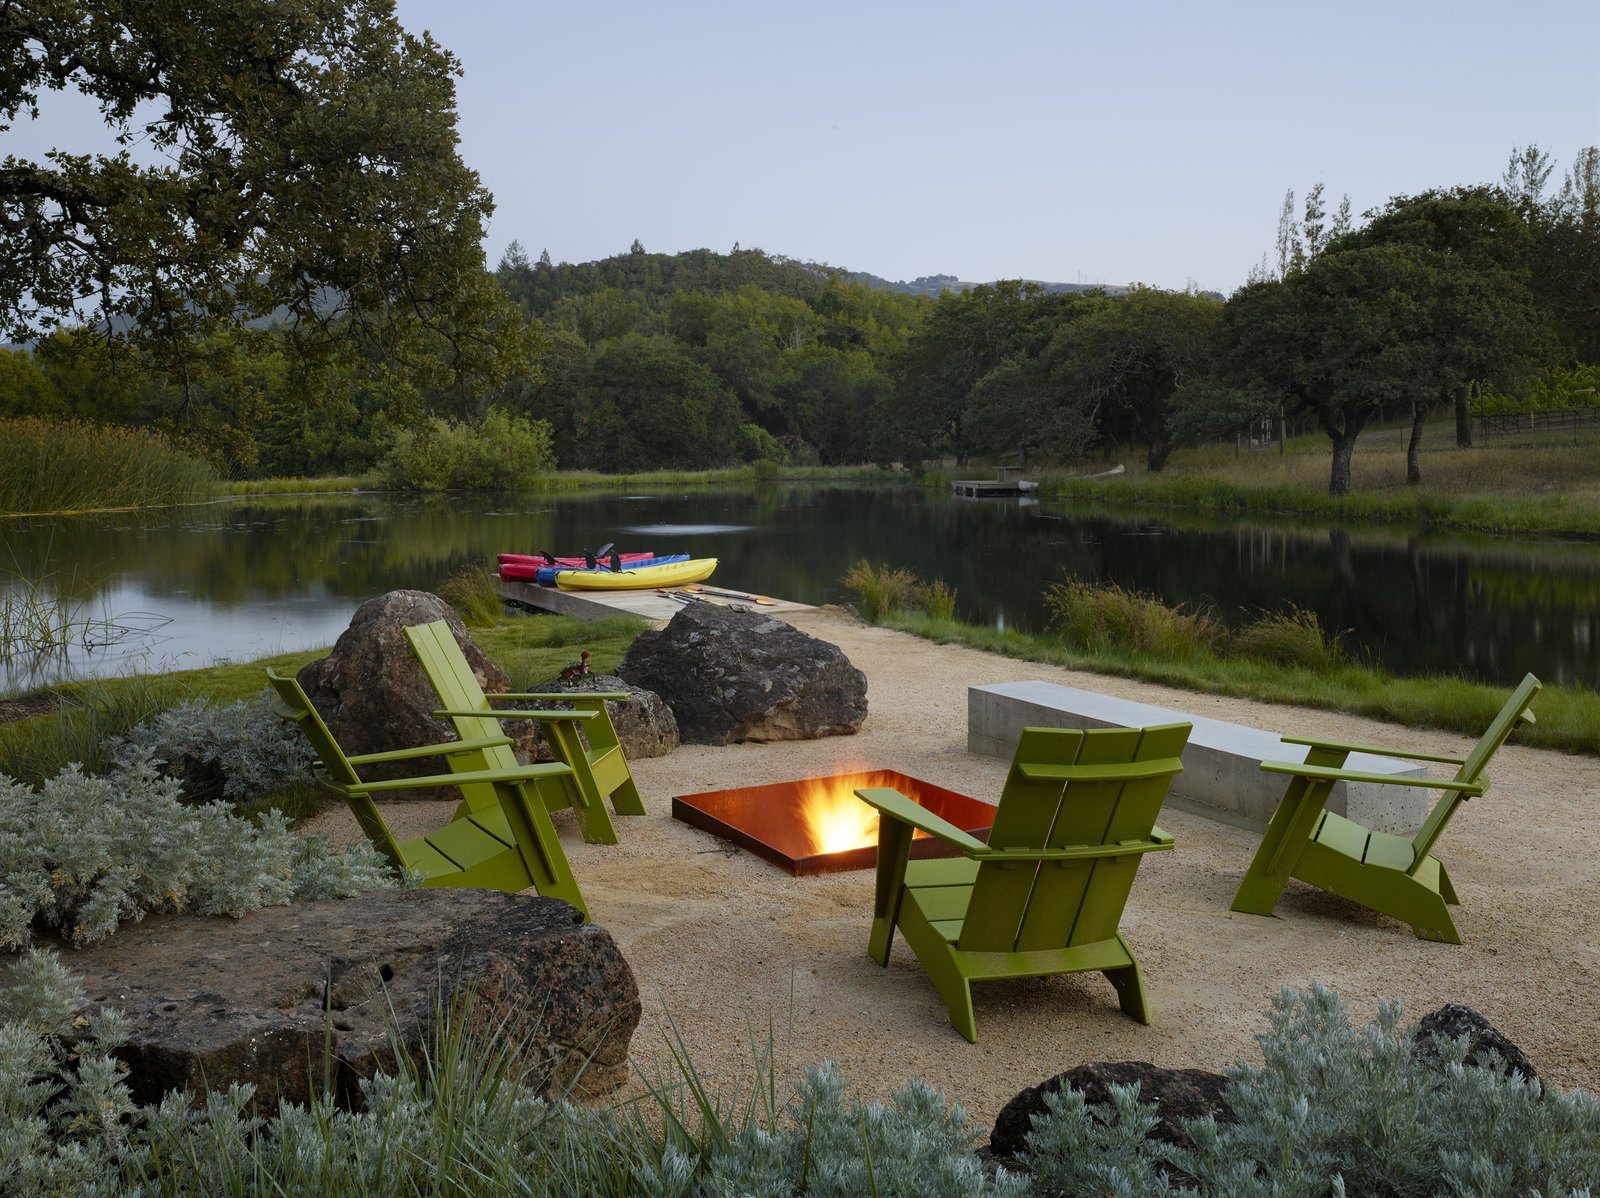 #TurnbullGriffinHaesloop #exterior #firepit #dock  Sonoma Residence by Turnbull Griffin Haesloop Architects